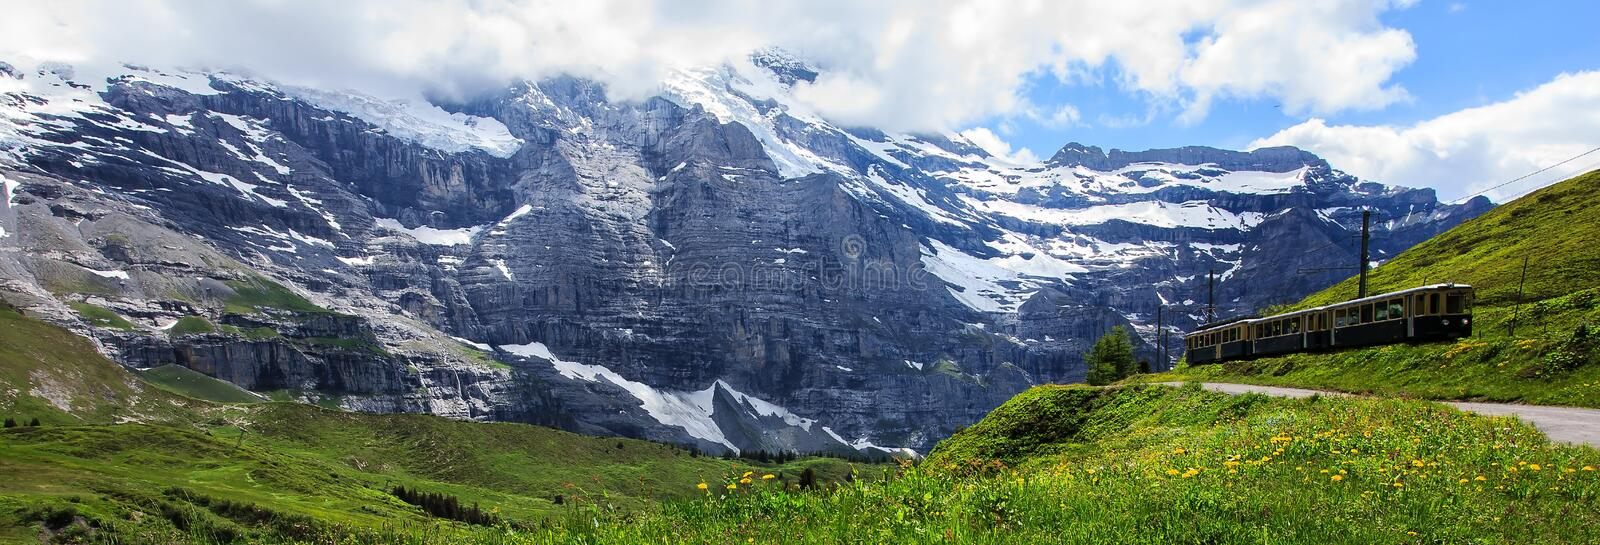 Majestic panoramic view of scenery along a swiss railways train, connecting Kleine Scheidegg to Wengernalp stations, Switzerland stock photography